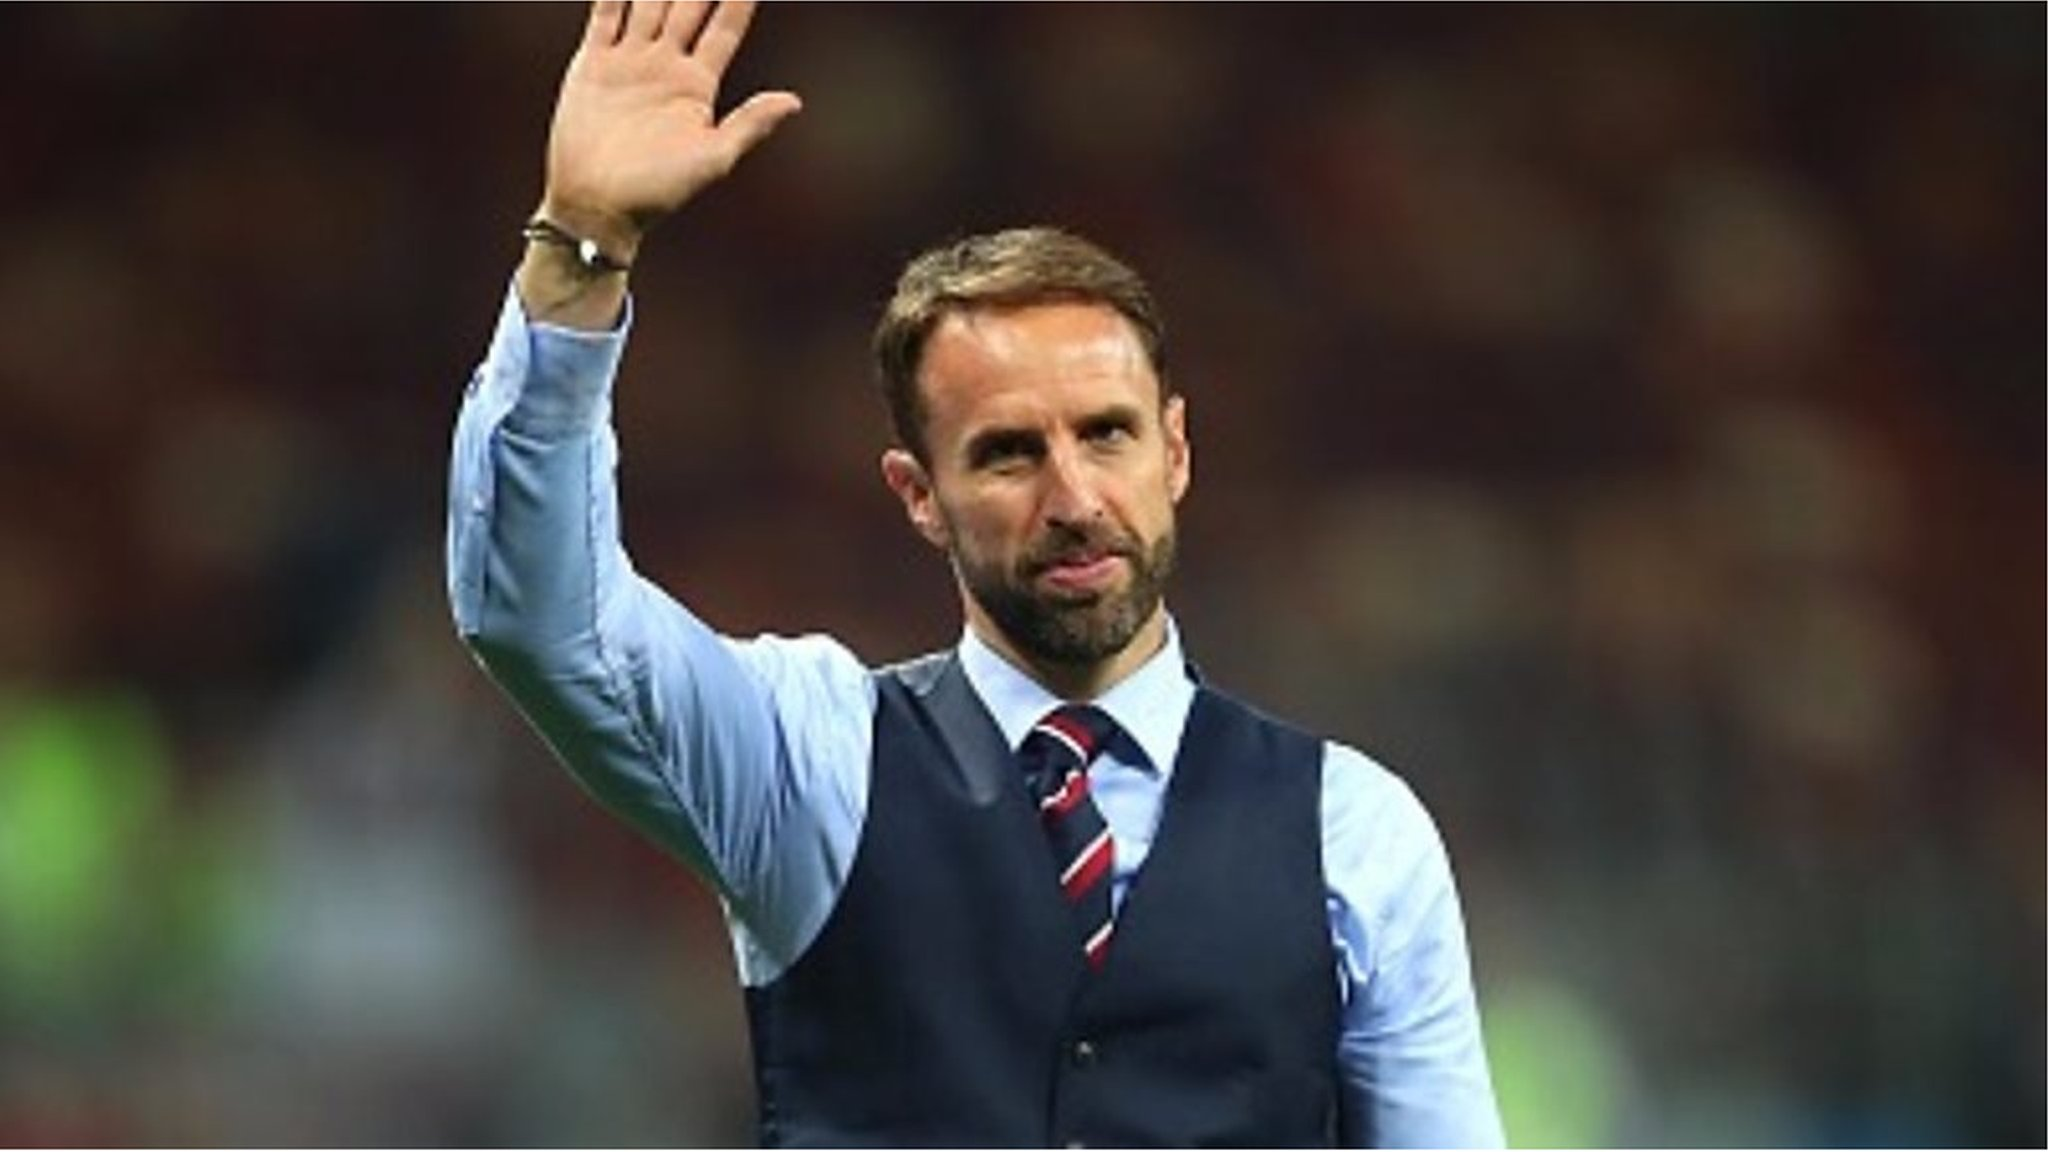 World Cup 2018: England are still a work in progress - Southgate after semi-final defeat to Croatia